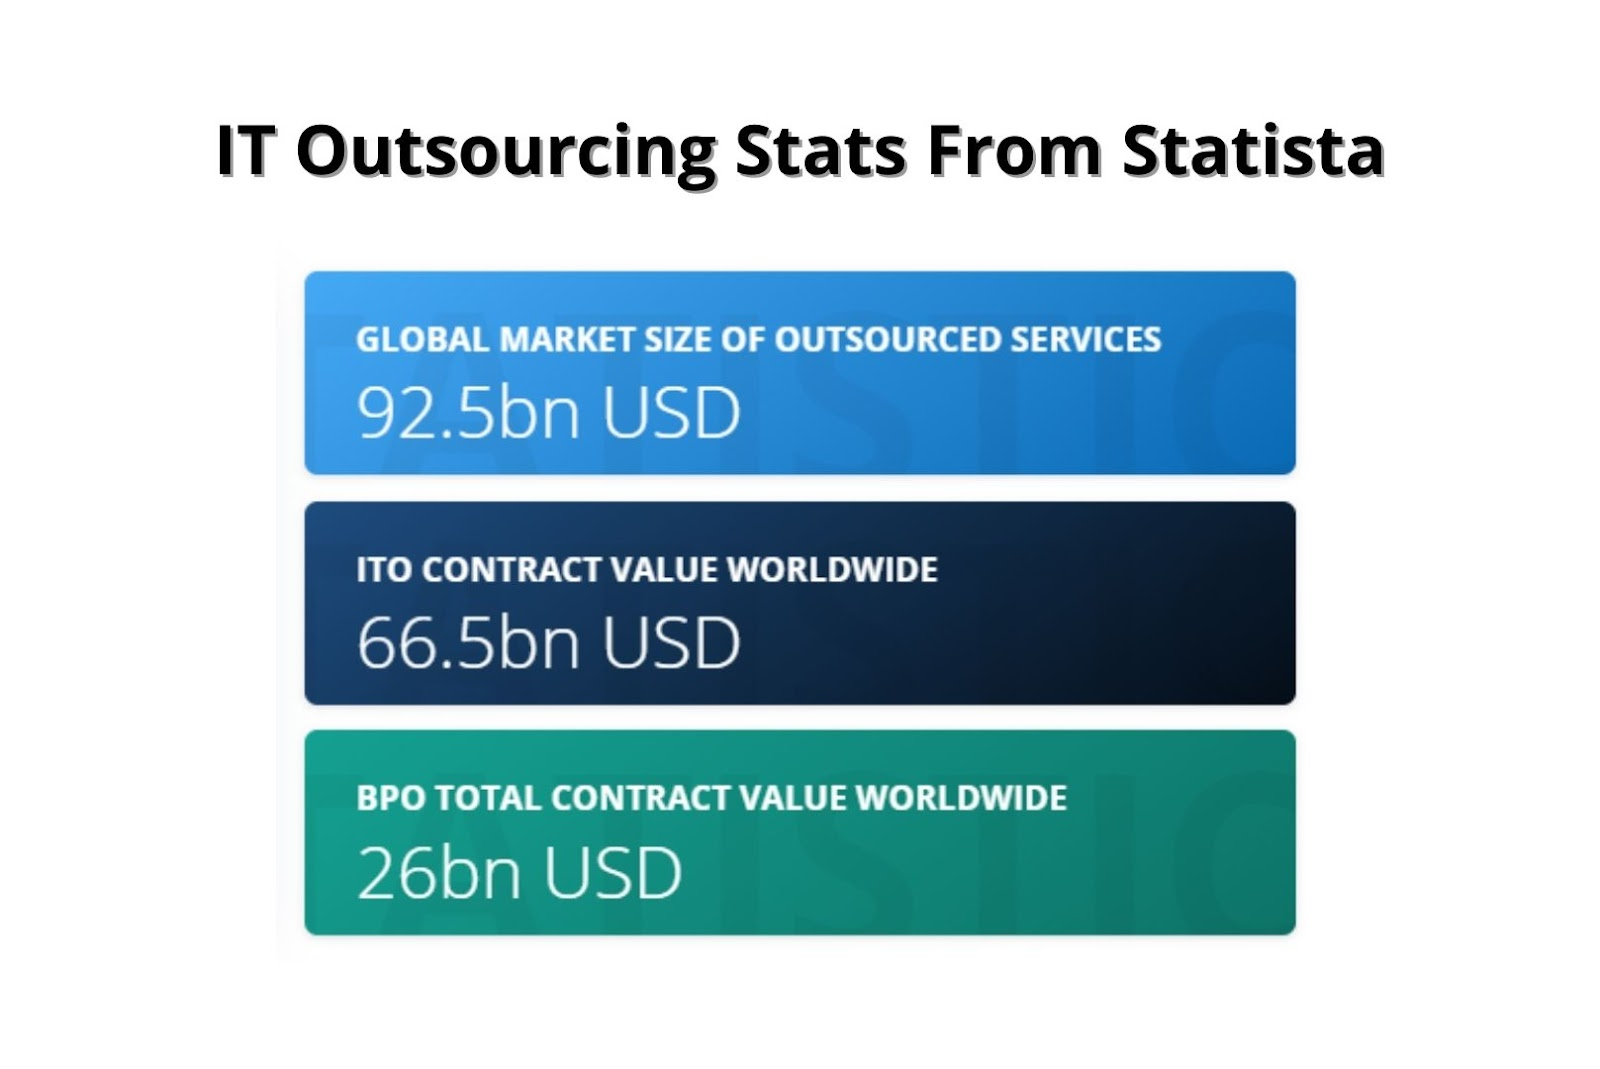 IT Outsourcing stats